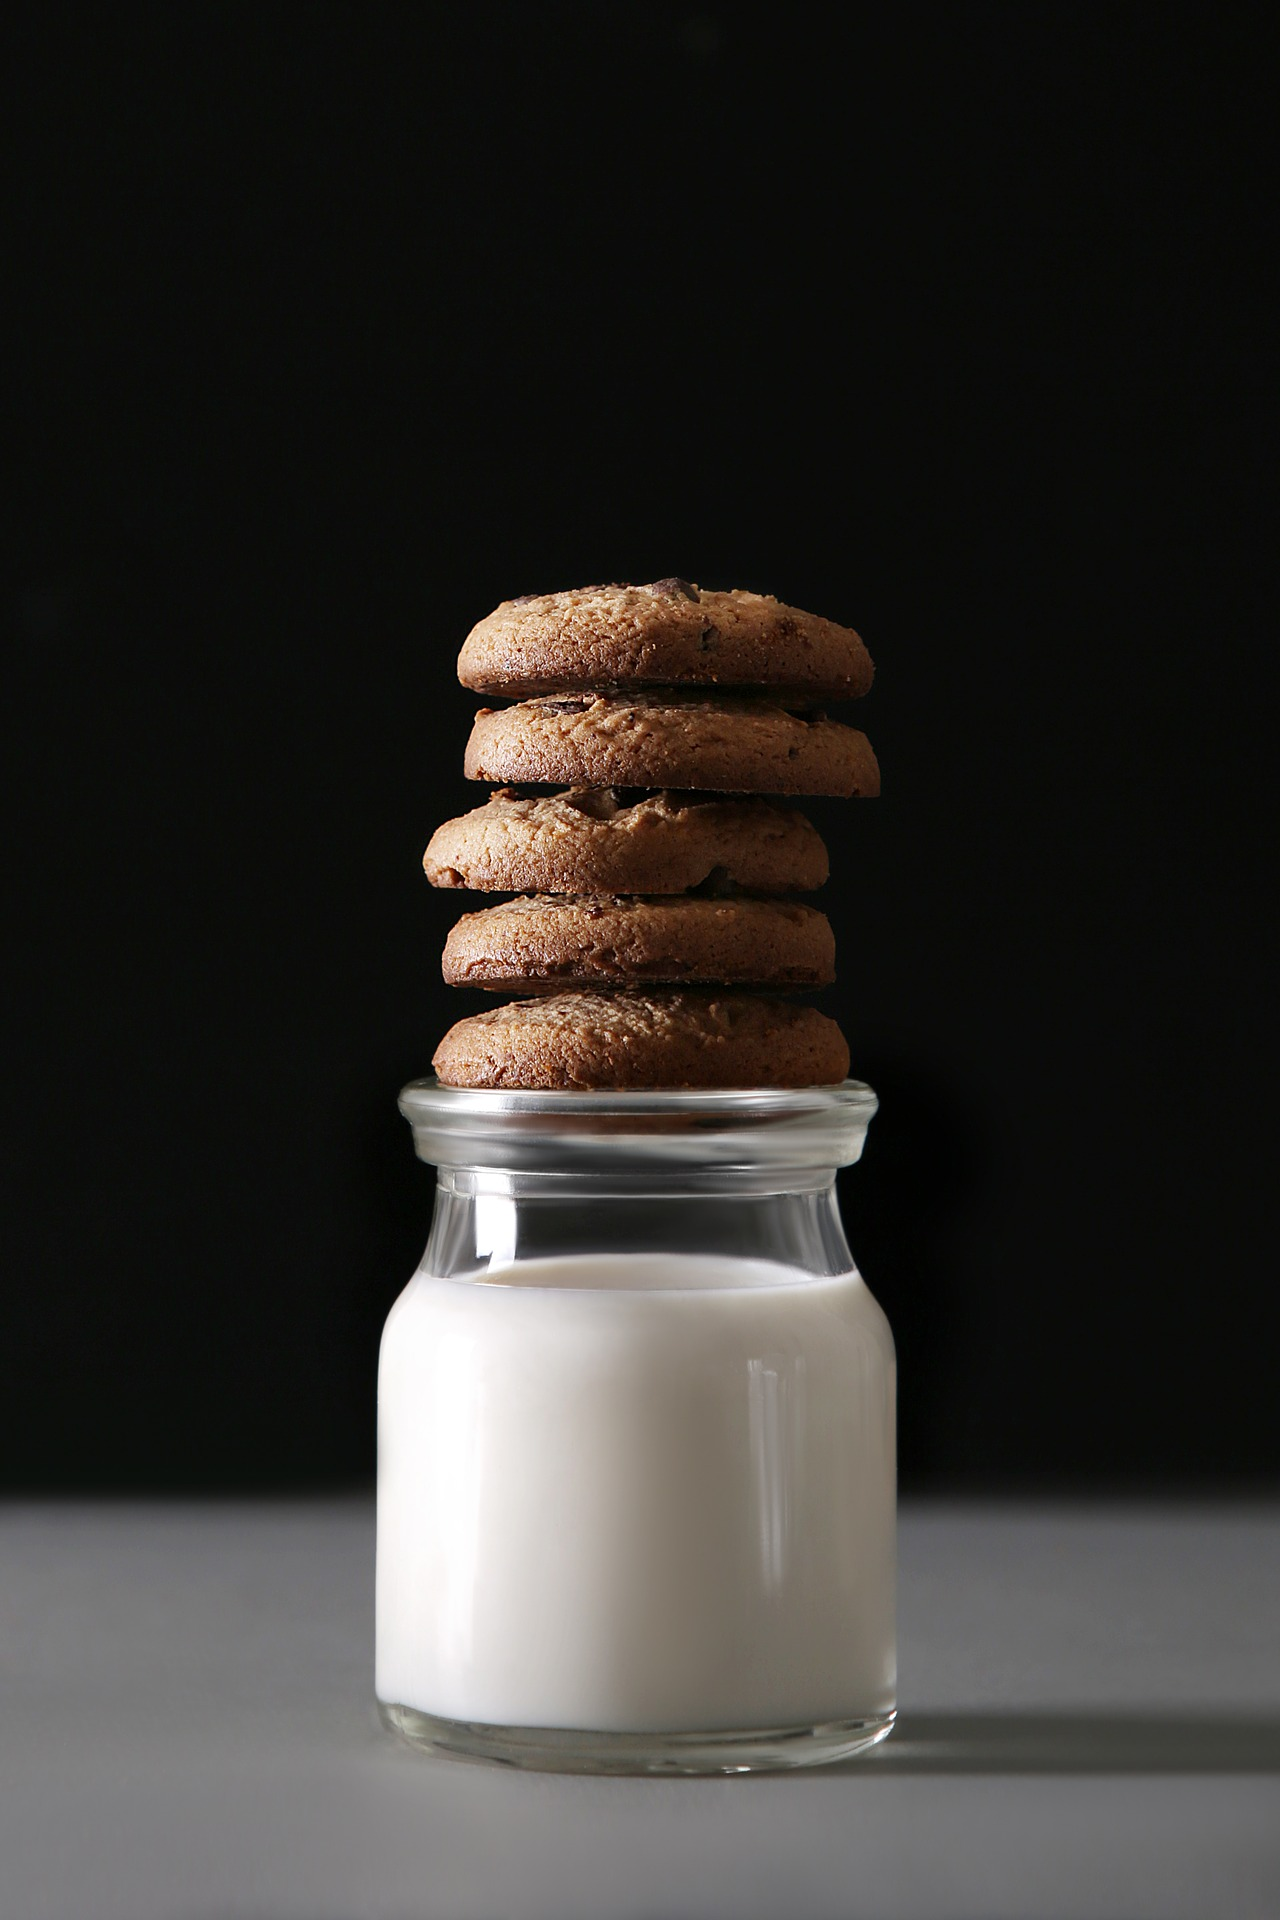 miilk and cookies